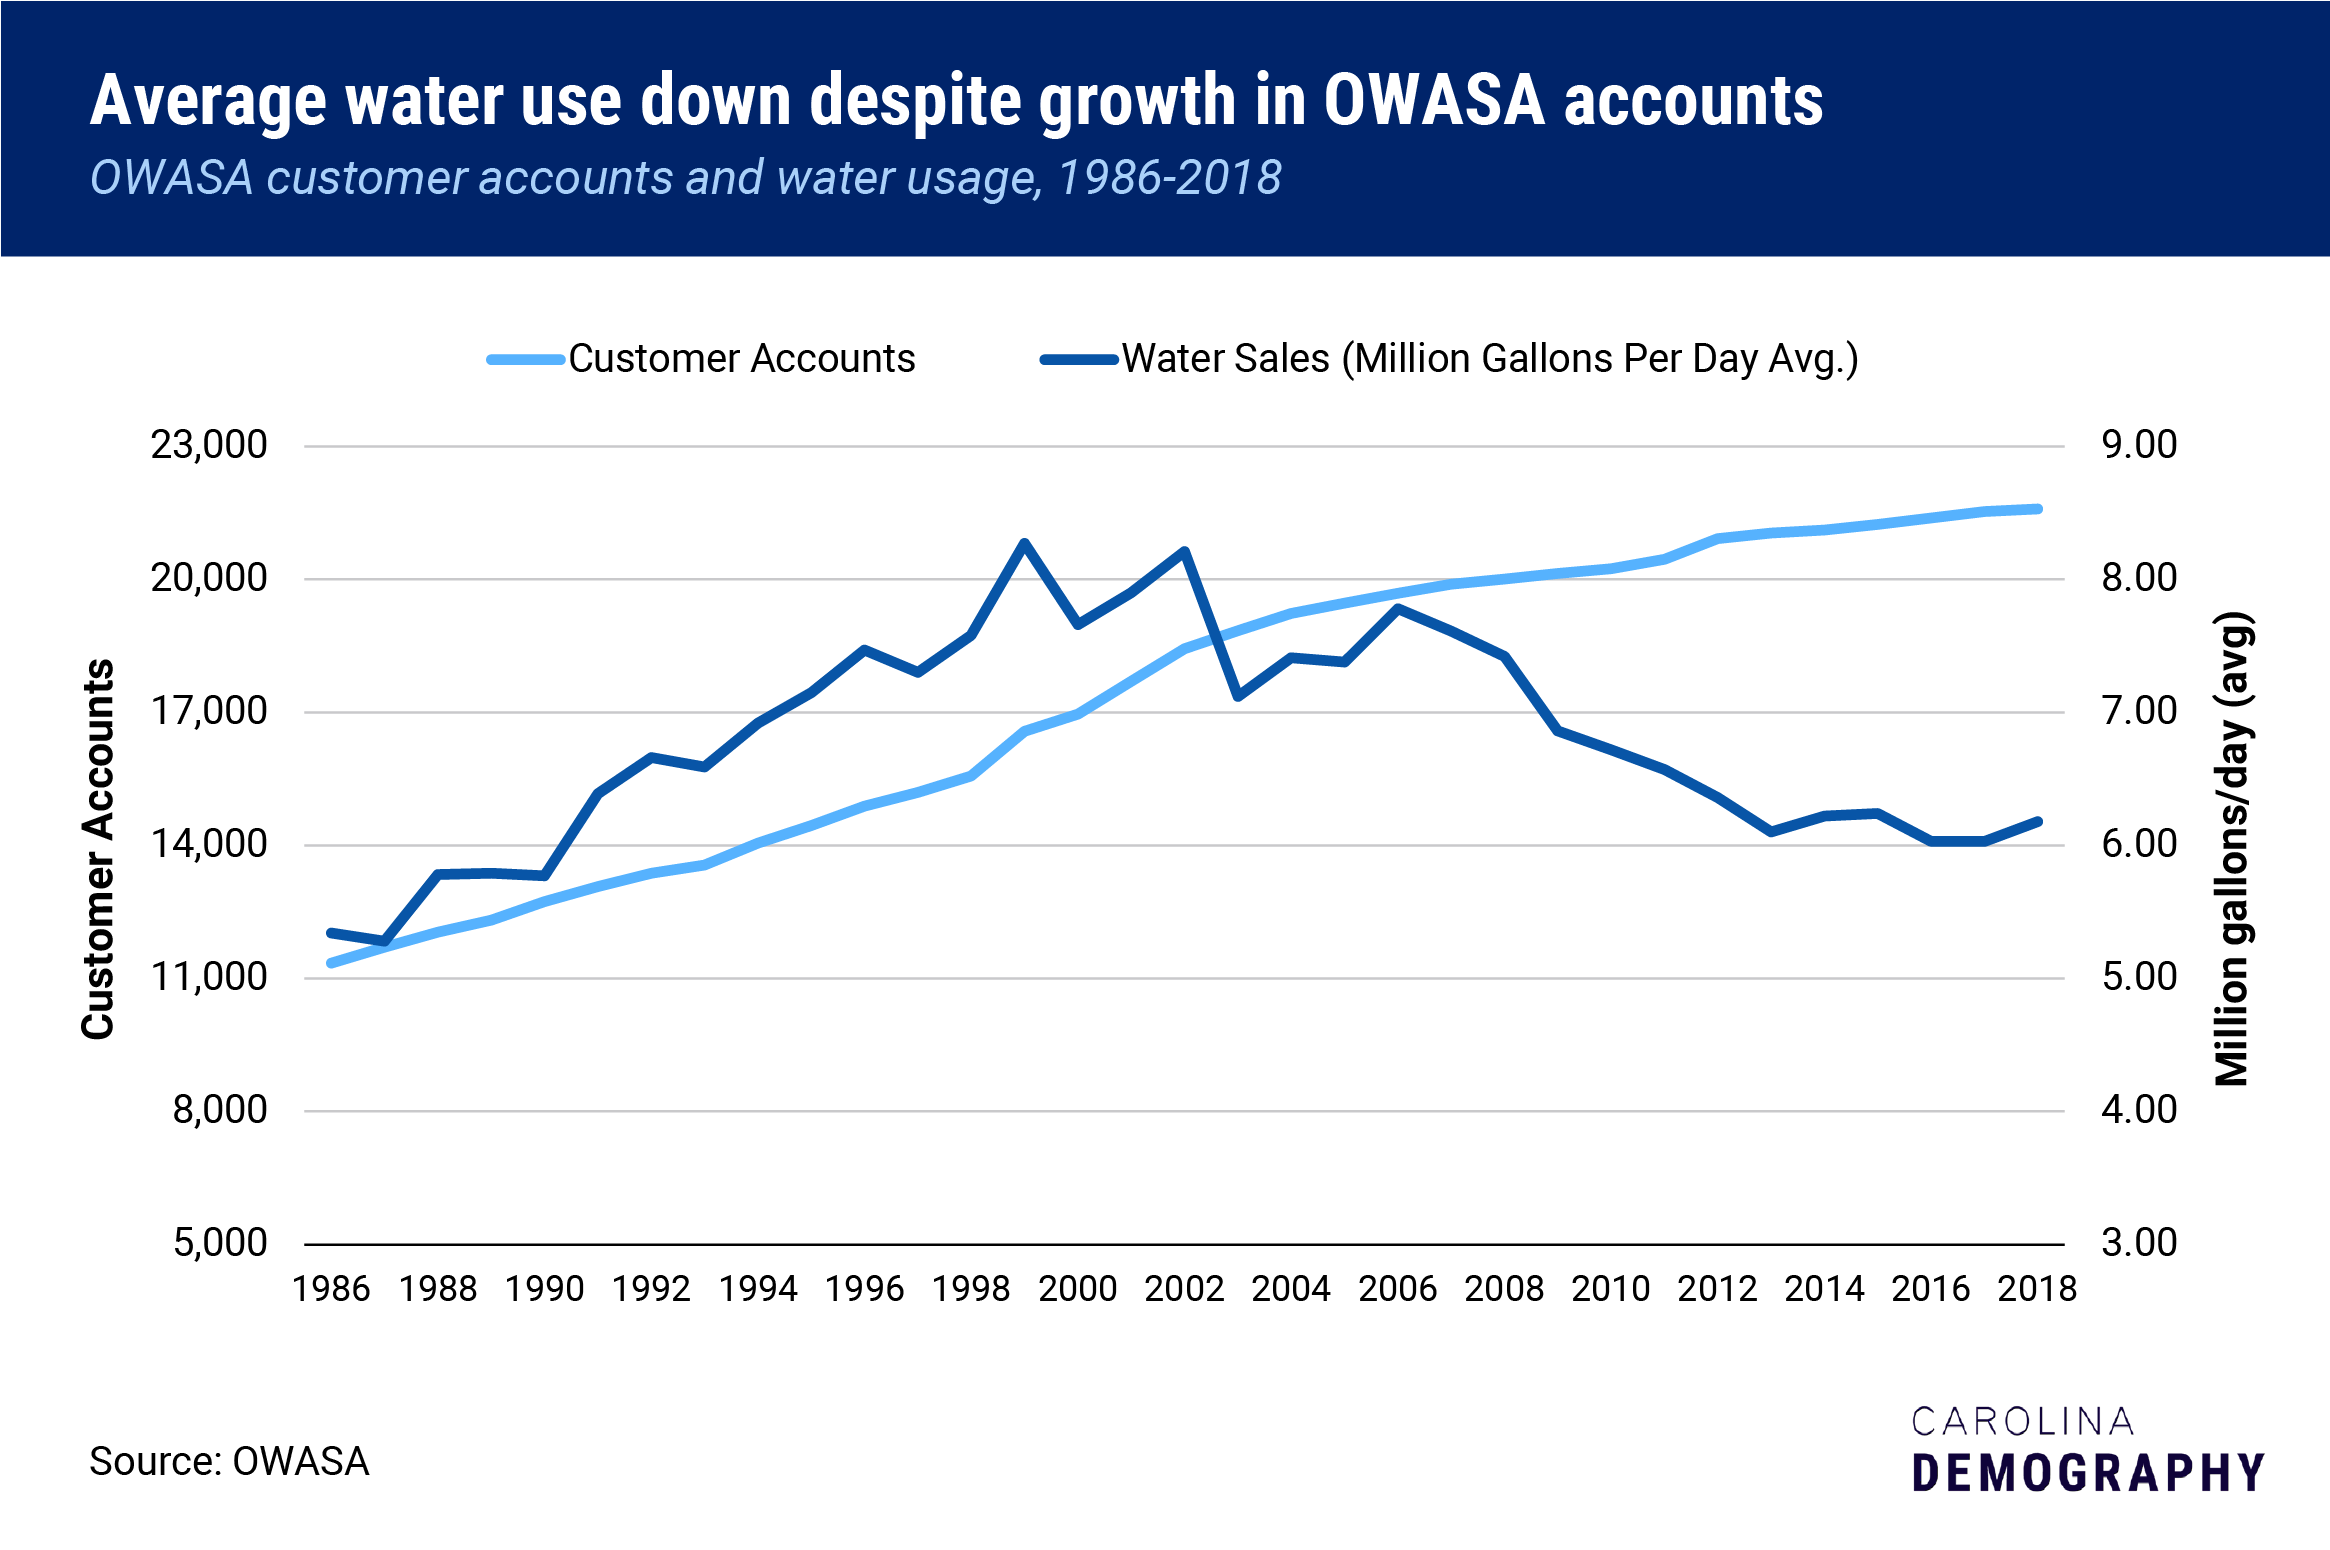 OWASA accounts and sales